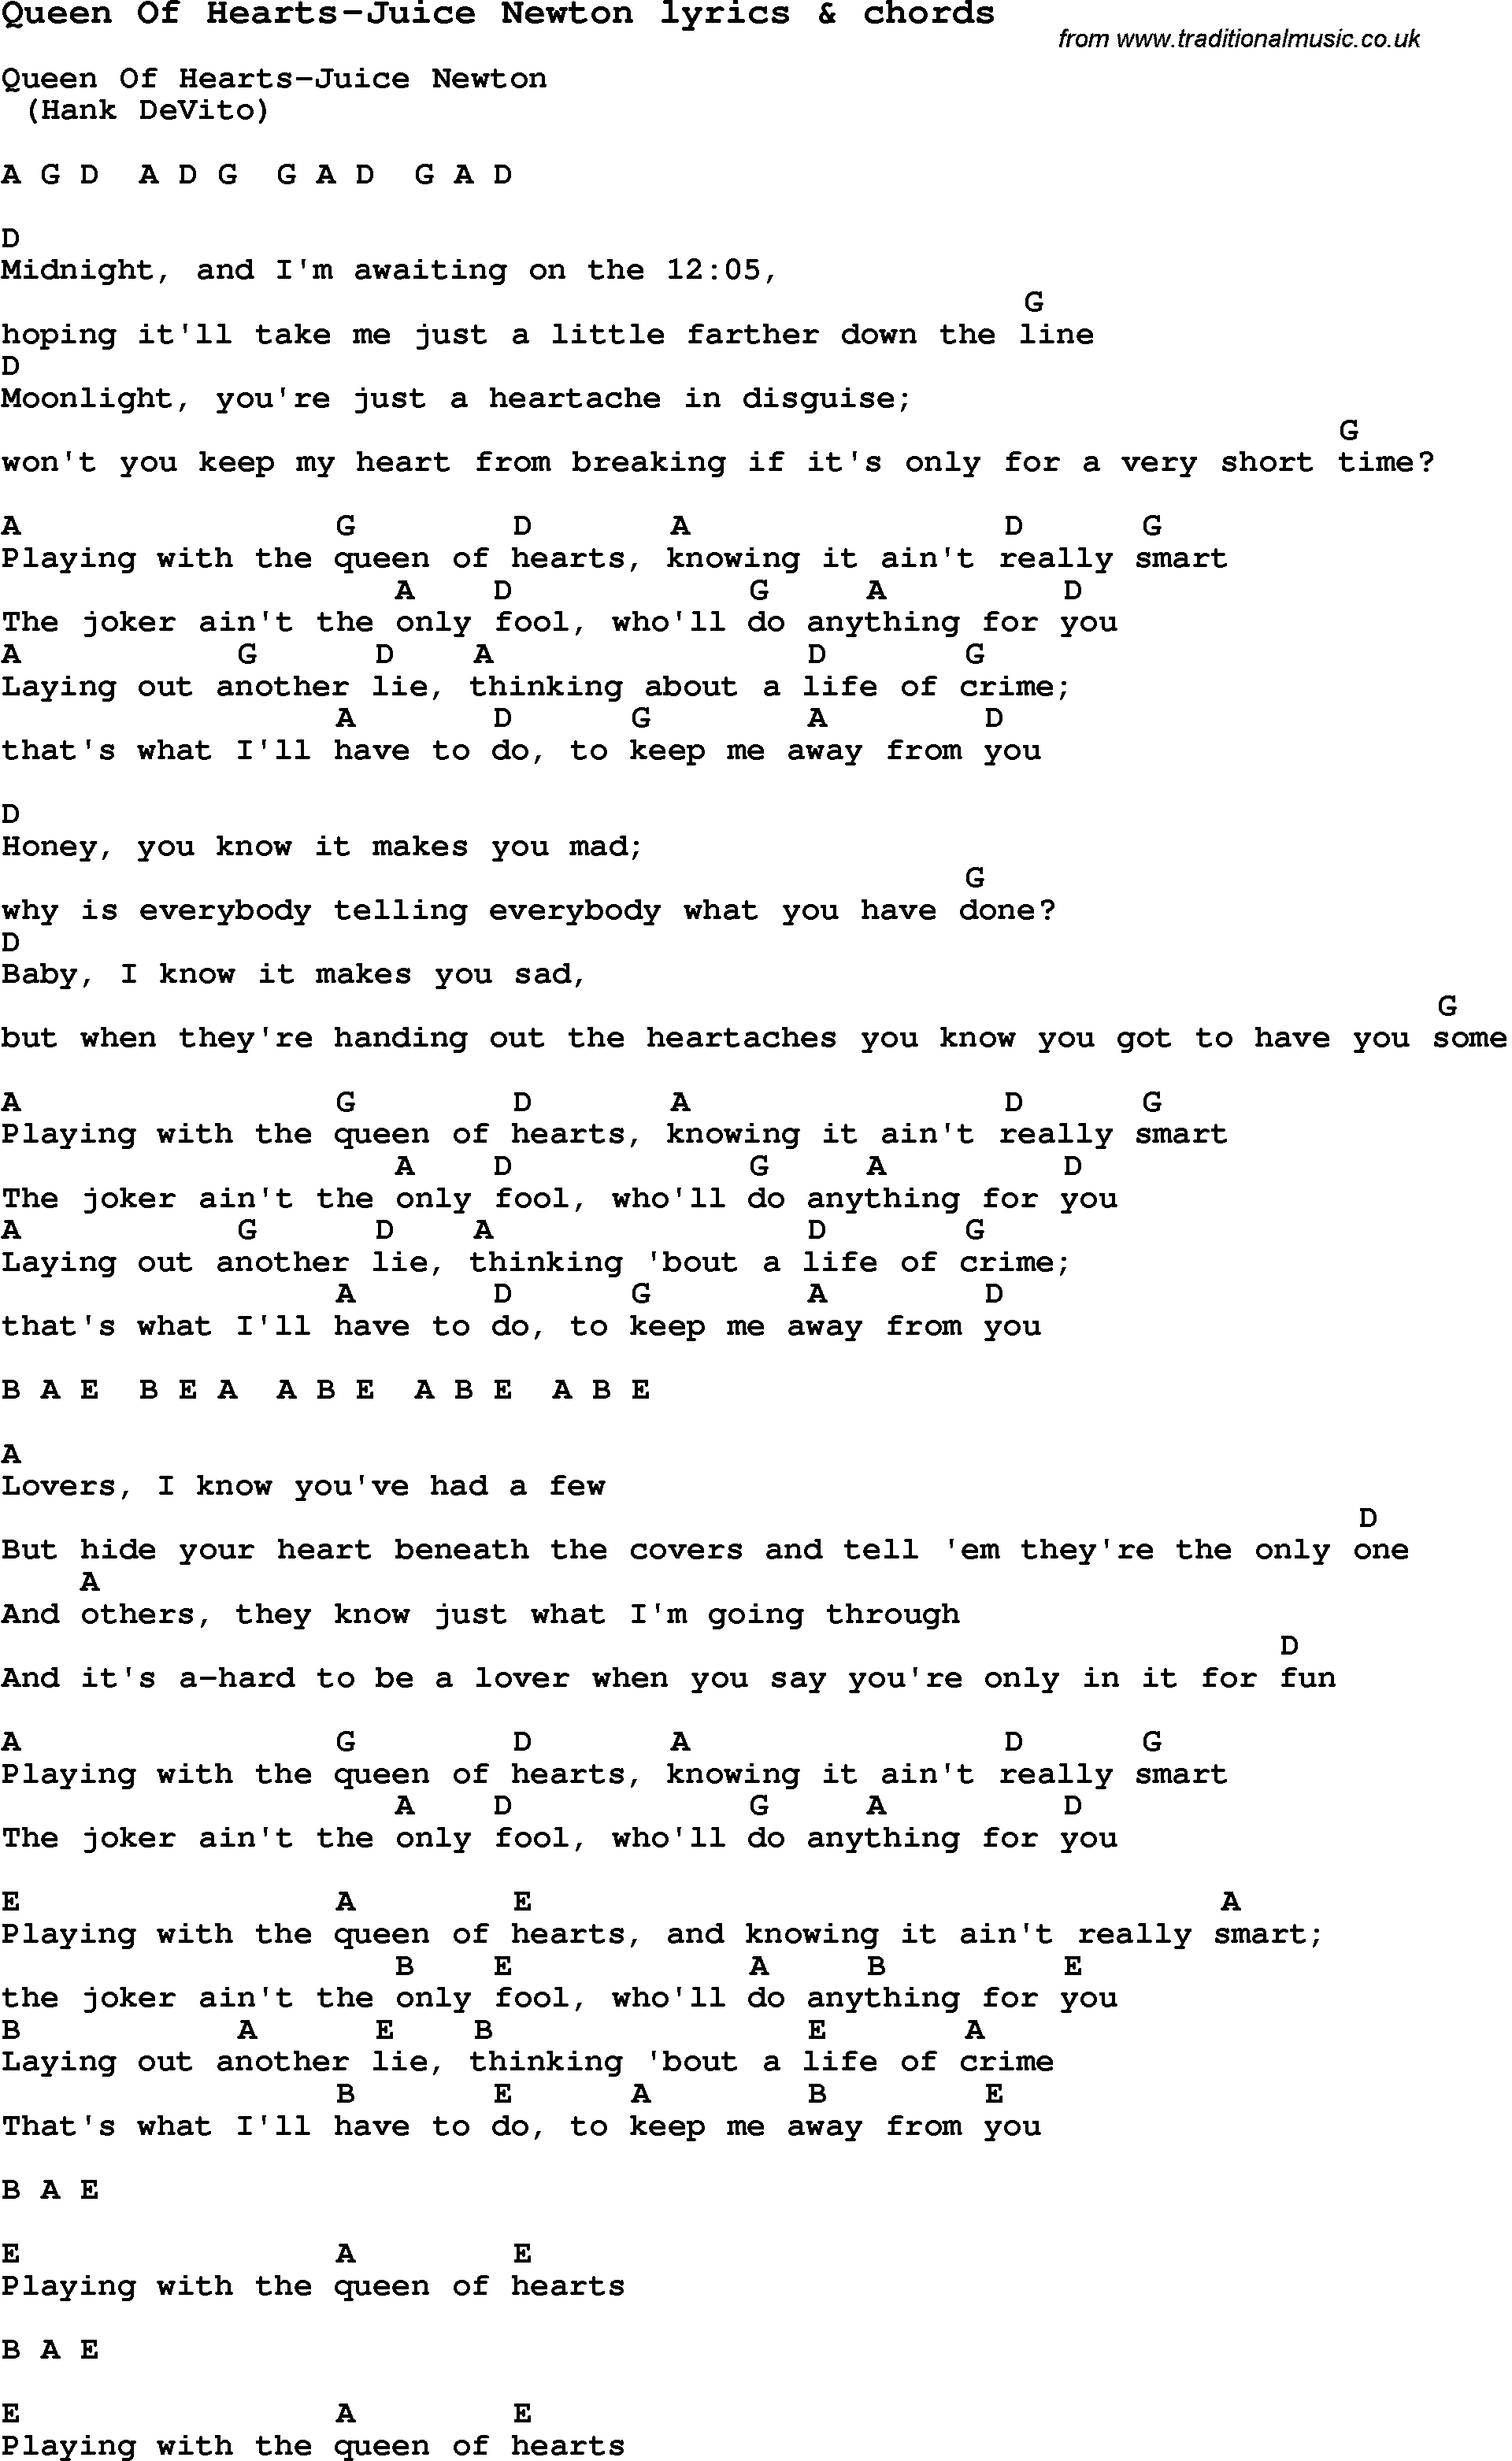 Love Song Lyrics for:Queen Of Hearts-Juice Newton with chords.